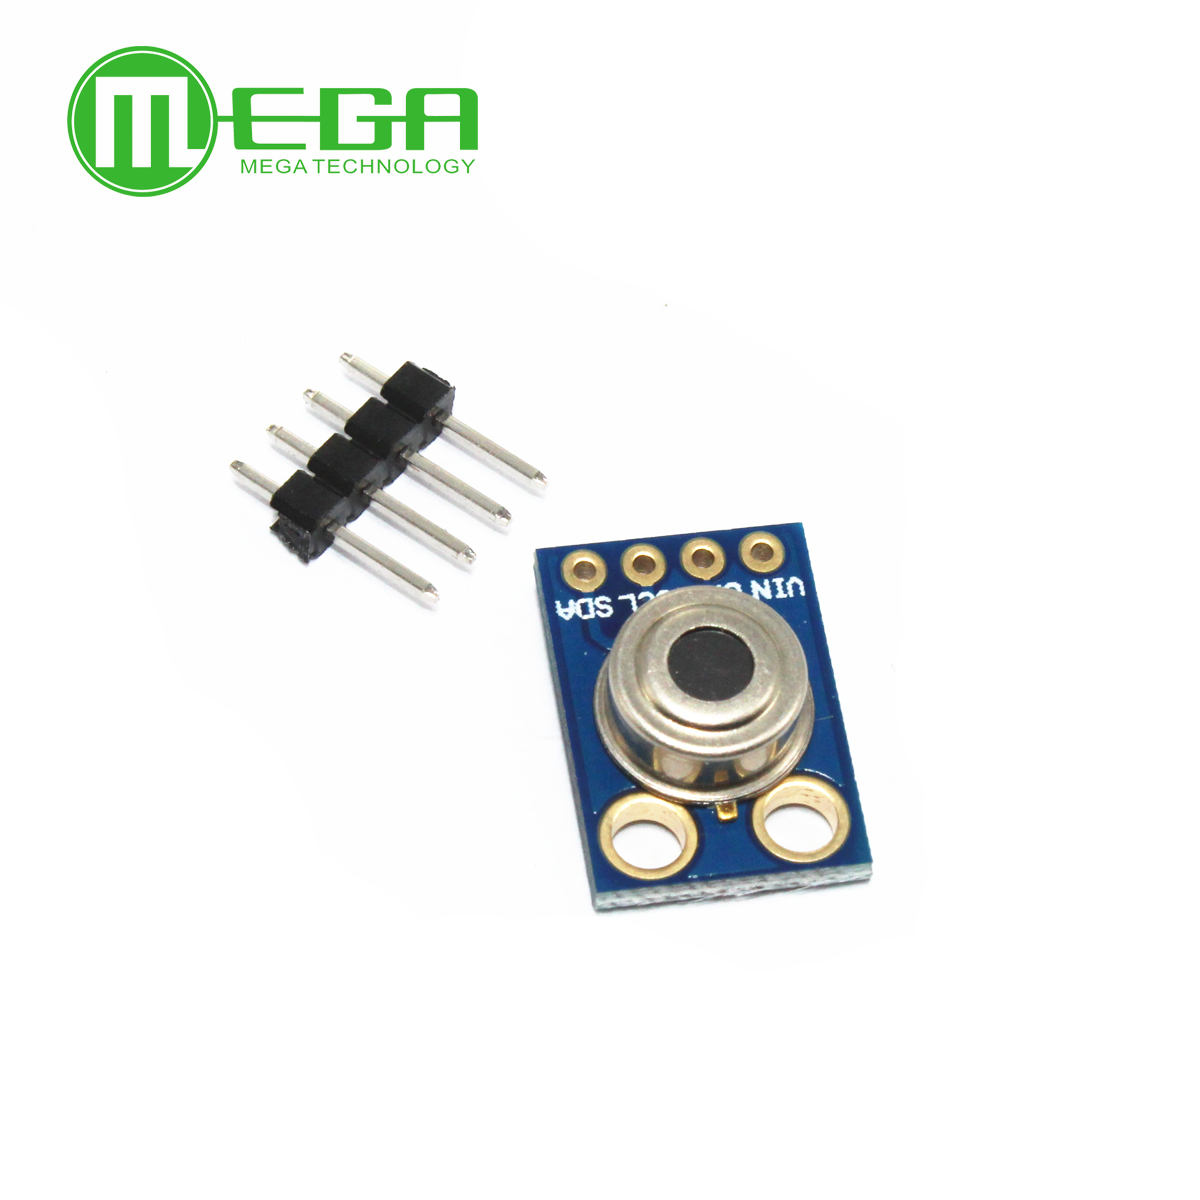 5PCS/LOT GY-906 MLX90614ESF New MLX90614 Contactless Temperature Sensor Module5PCS/LOT GY-906 MLX90614ESF New MLX90614 Contactless Temperature Sensor Module